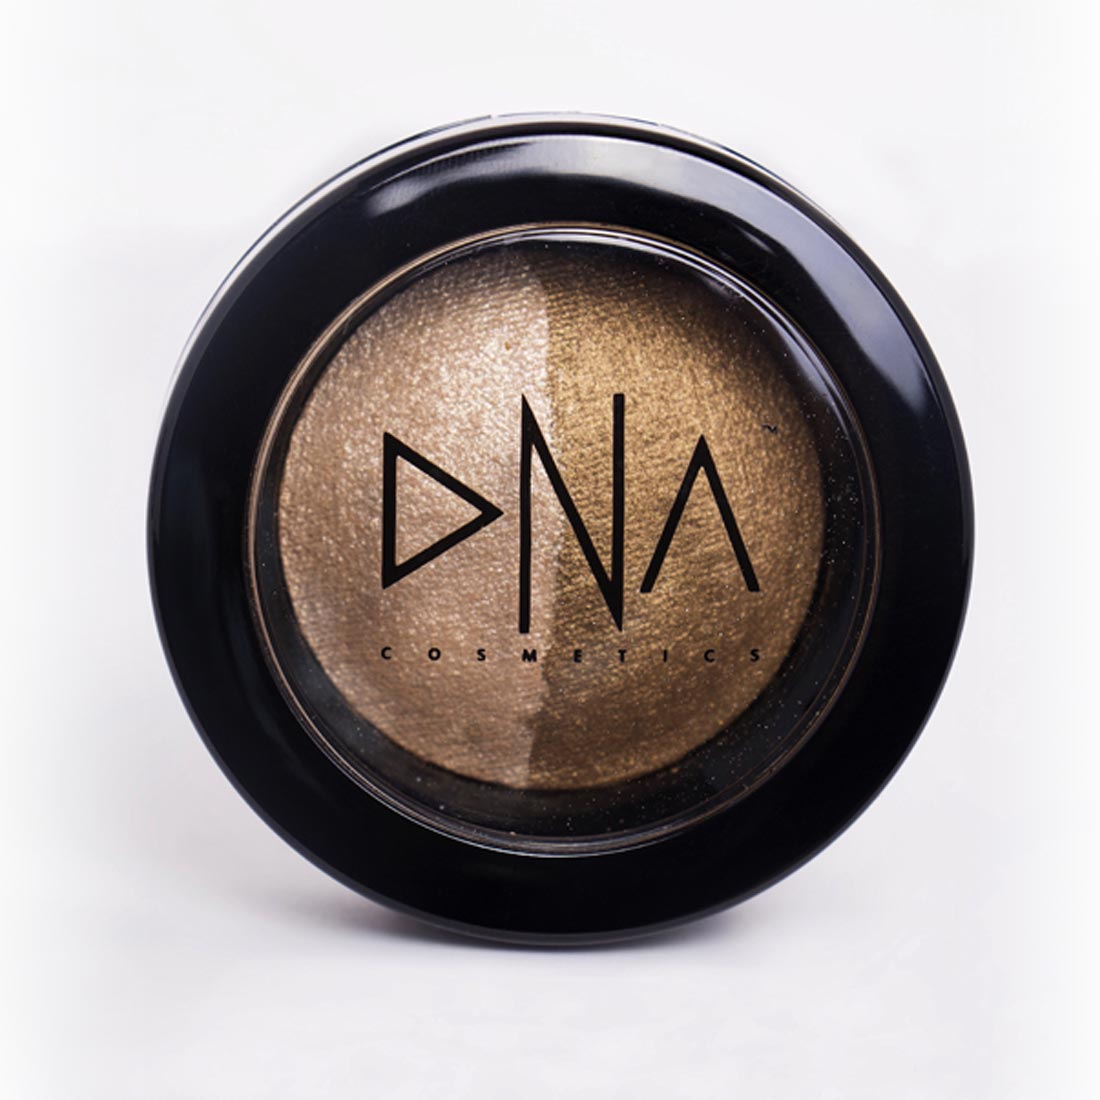 DNA Eyeshadows